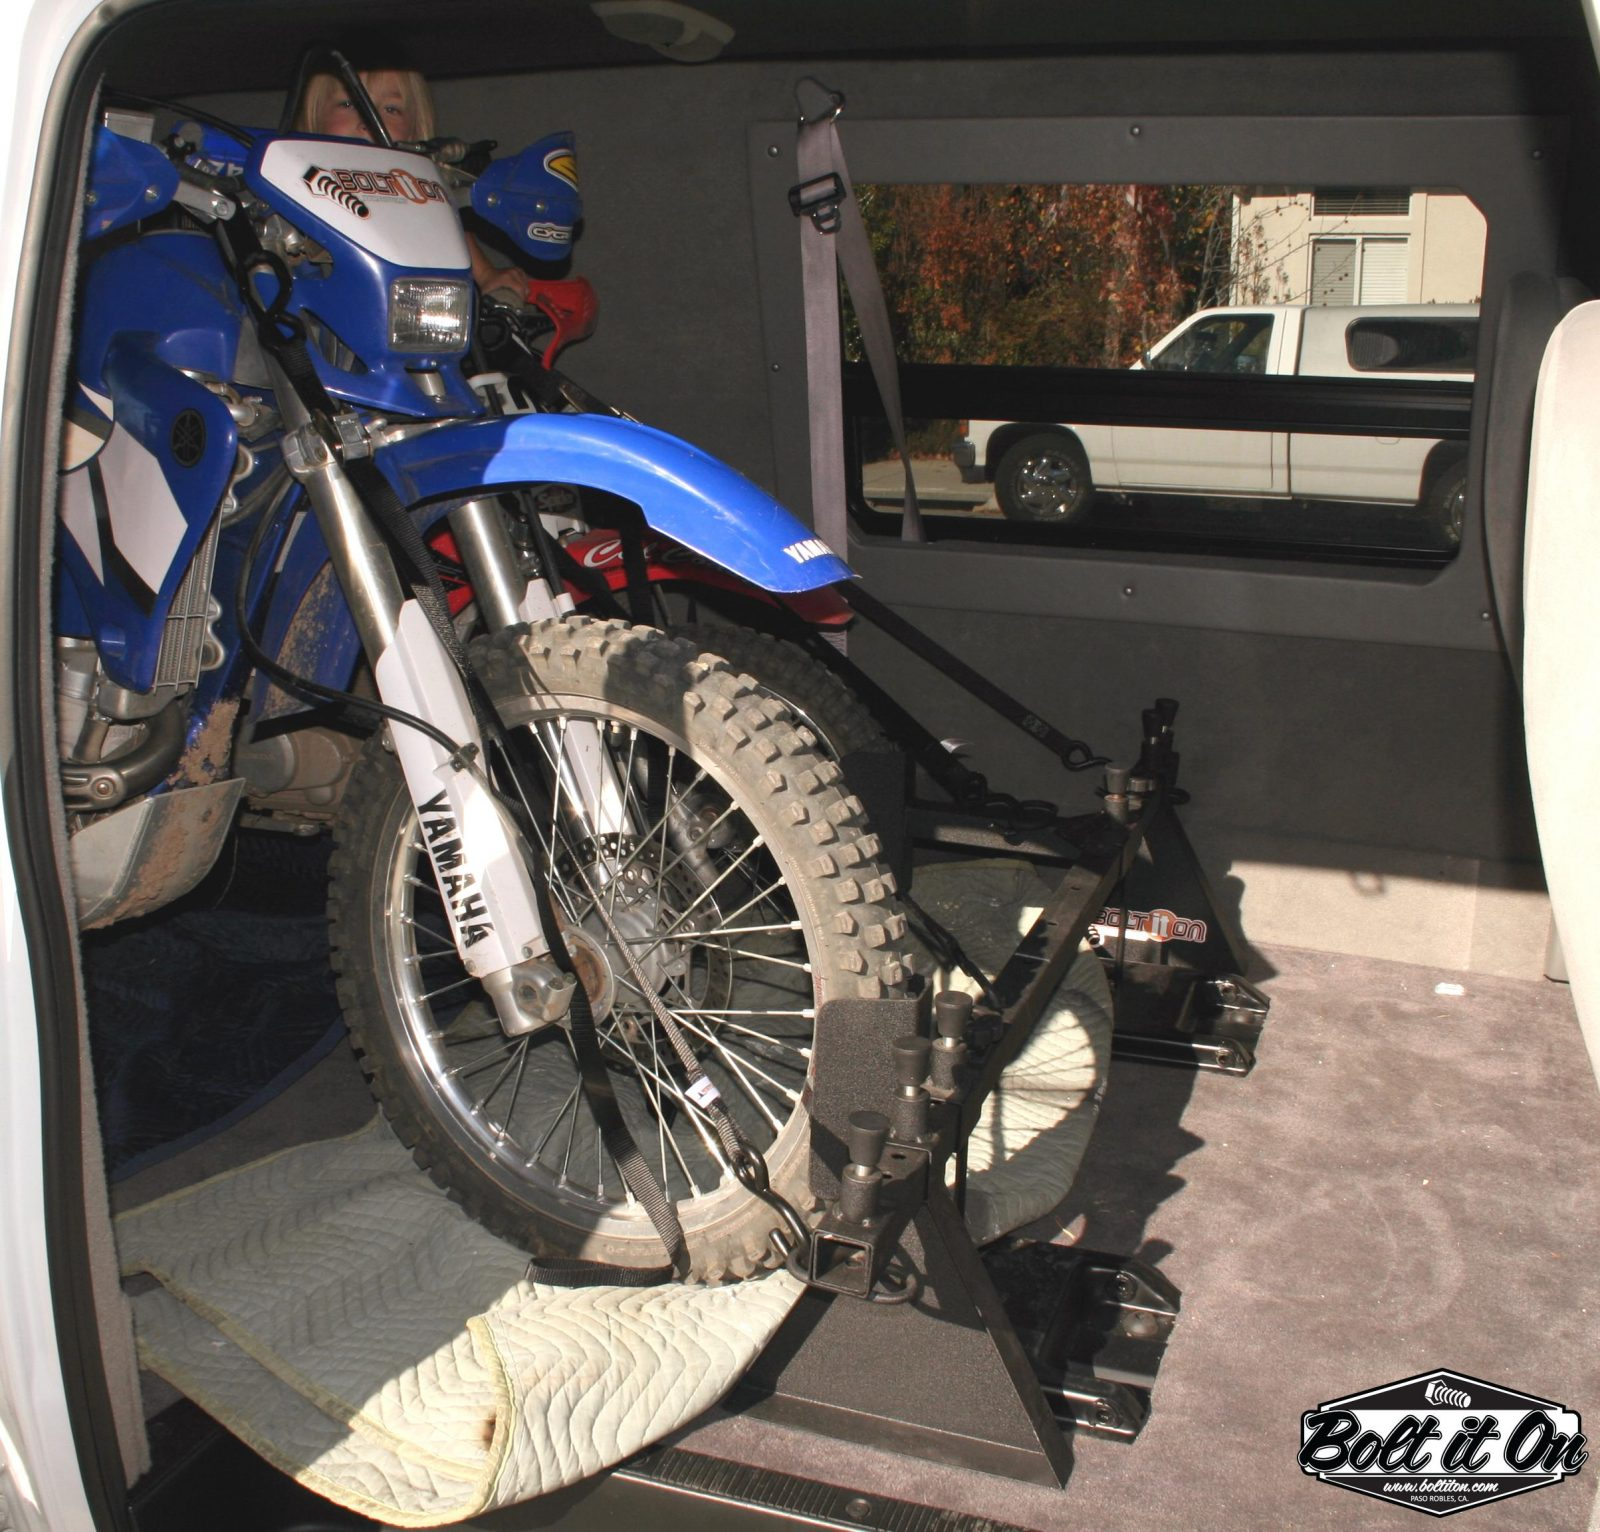 Ford E-Series motorcycle tie down system